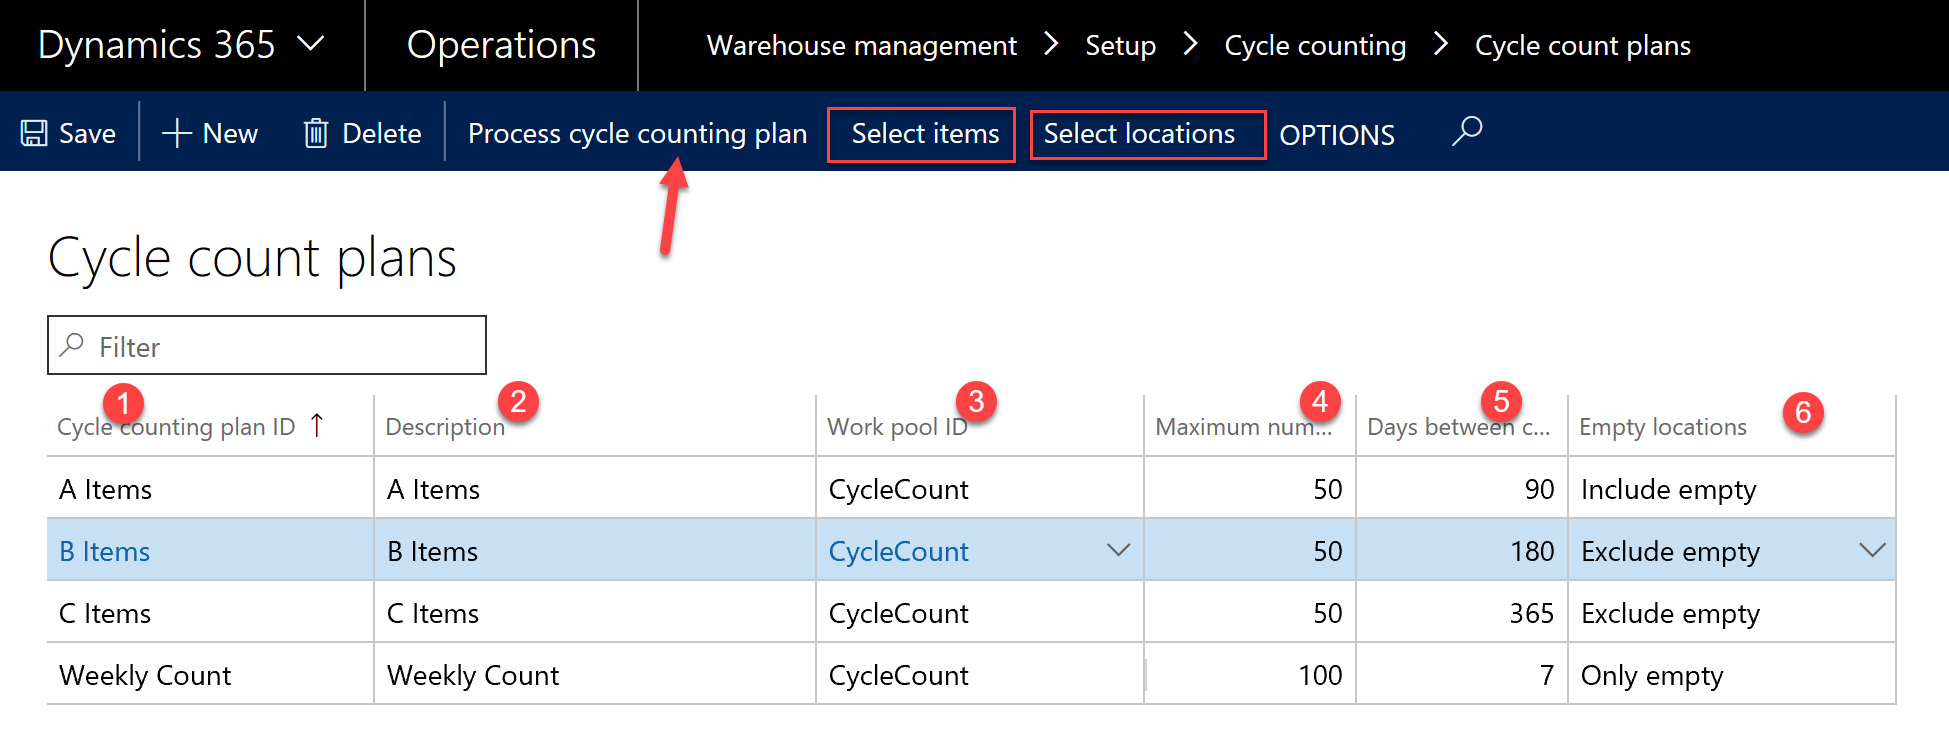 D365  Cycle count plans screenshot